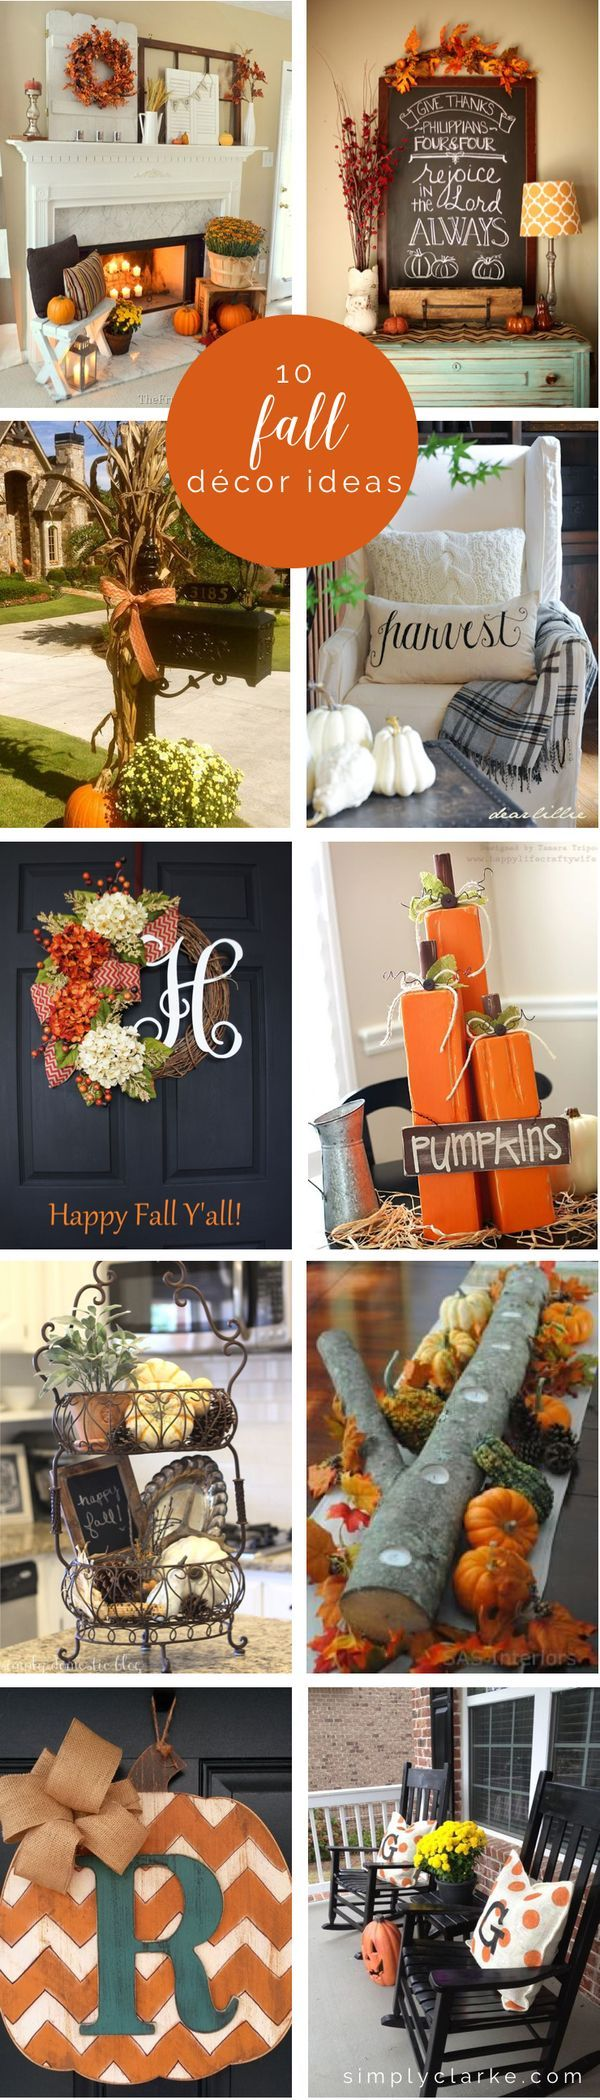 10 Fall Decor Ideas #diyfalldecor